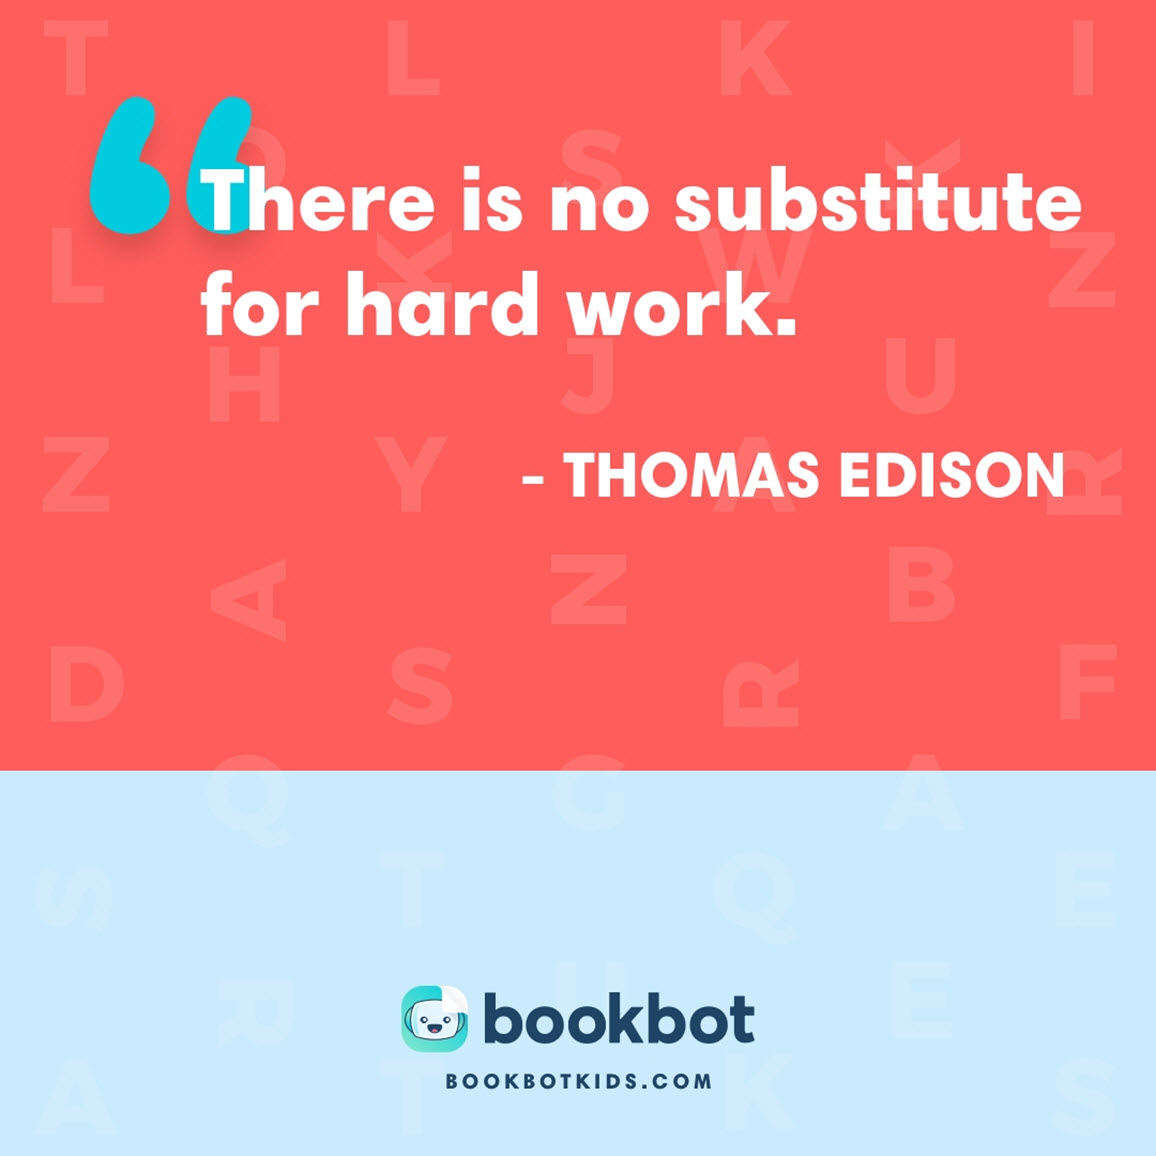 There is no substitute for hard work. – Thomas Edison